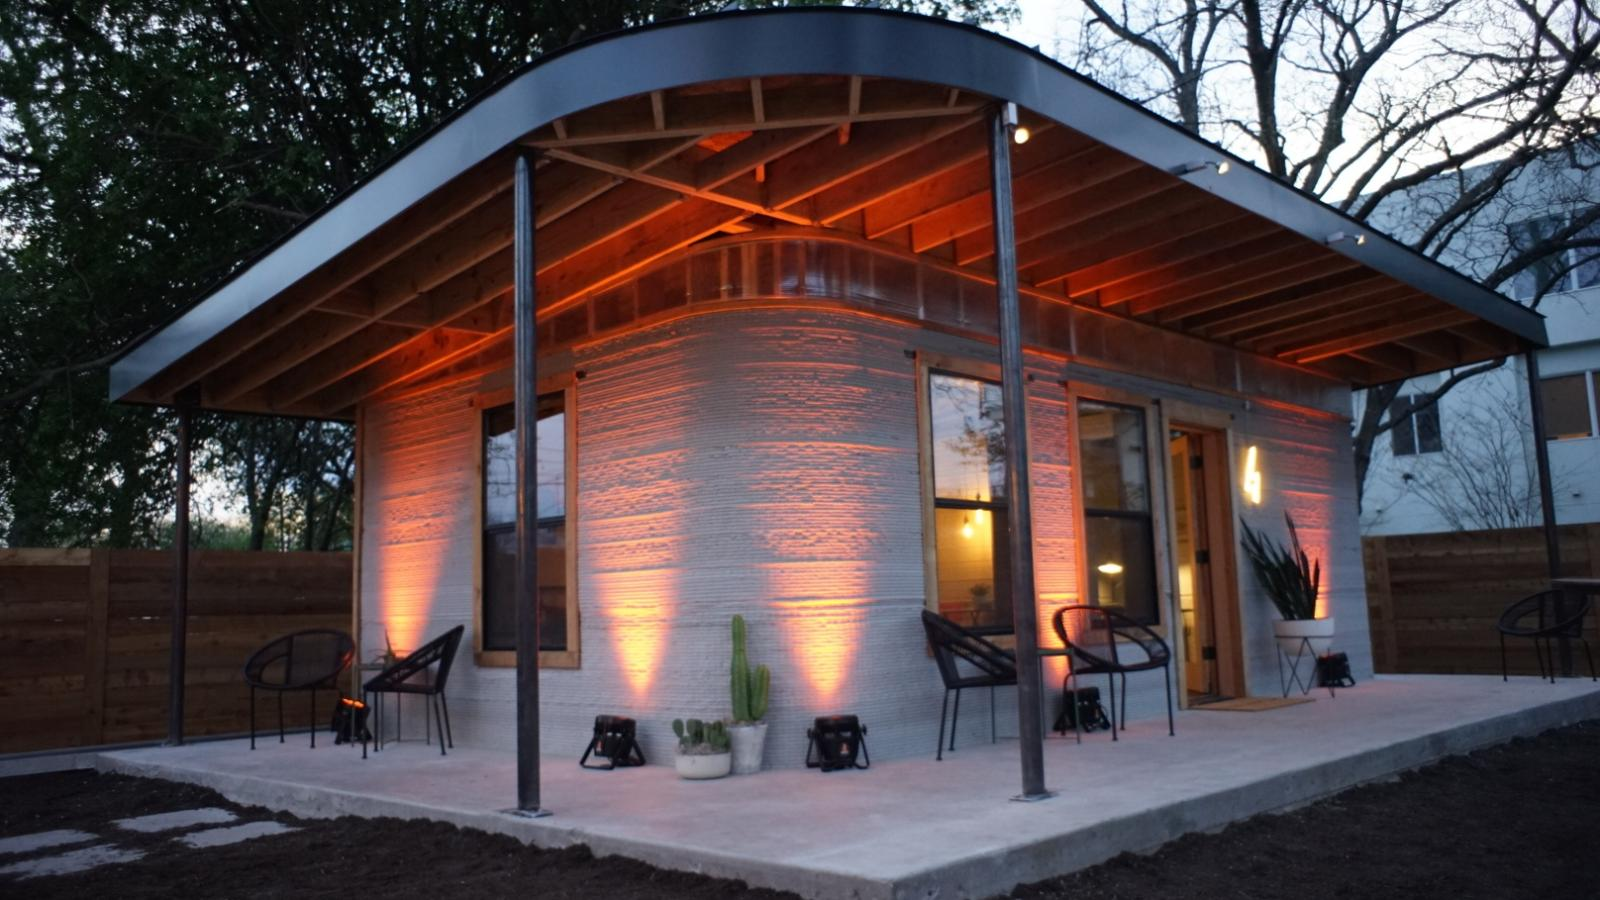 hight resolution of you can now 3d print a house in under a day